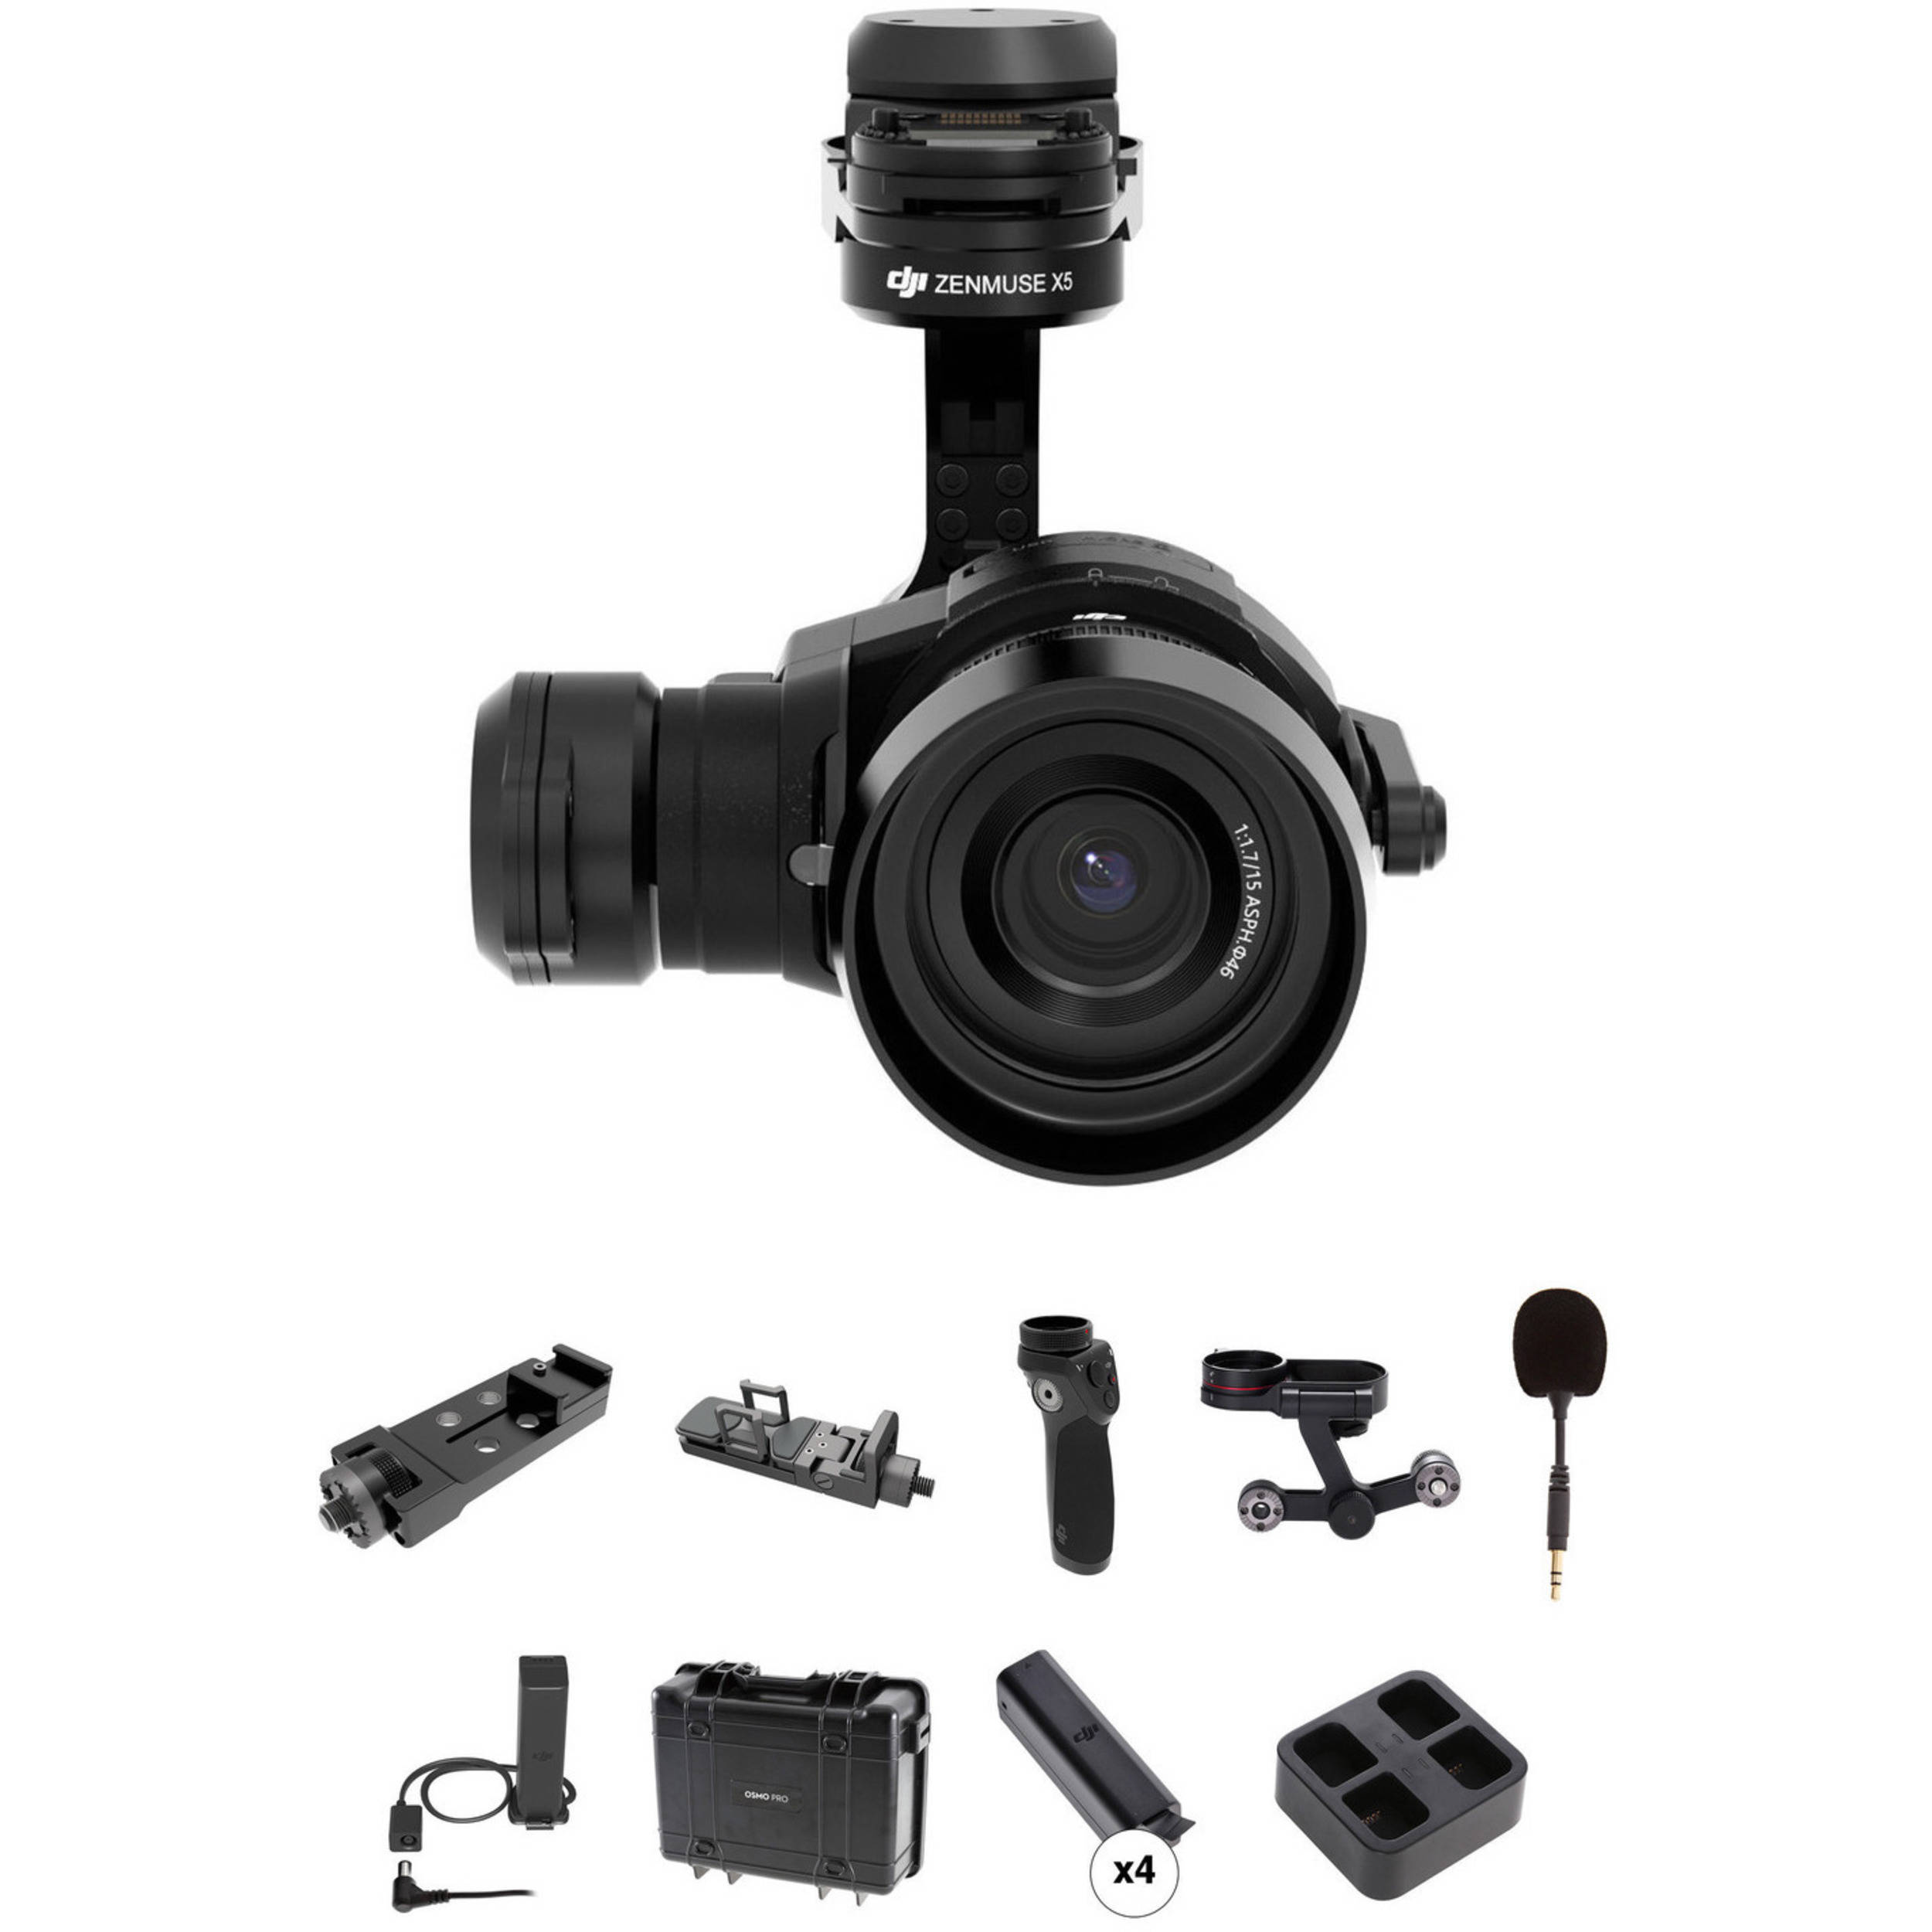 Dji Zenmuse X5 Camera Kit With Osmo Accessories Bh Photo Fm Gain Signal 180 Crystalsky Monitor